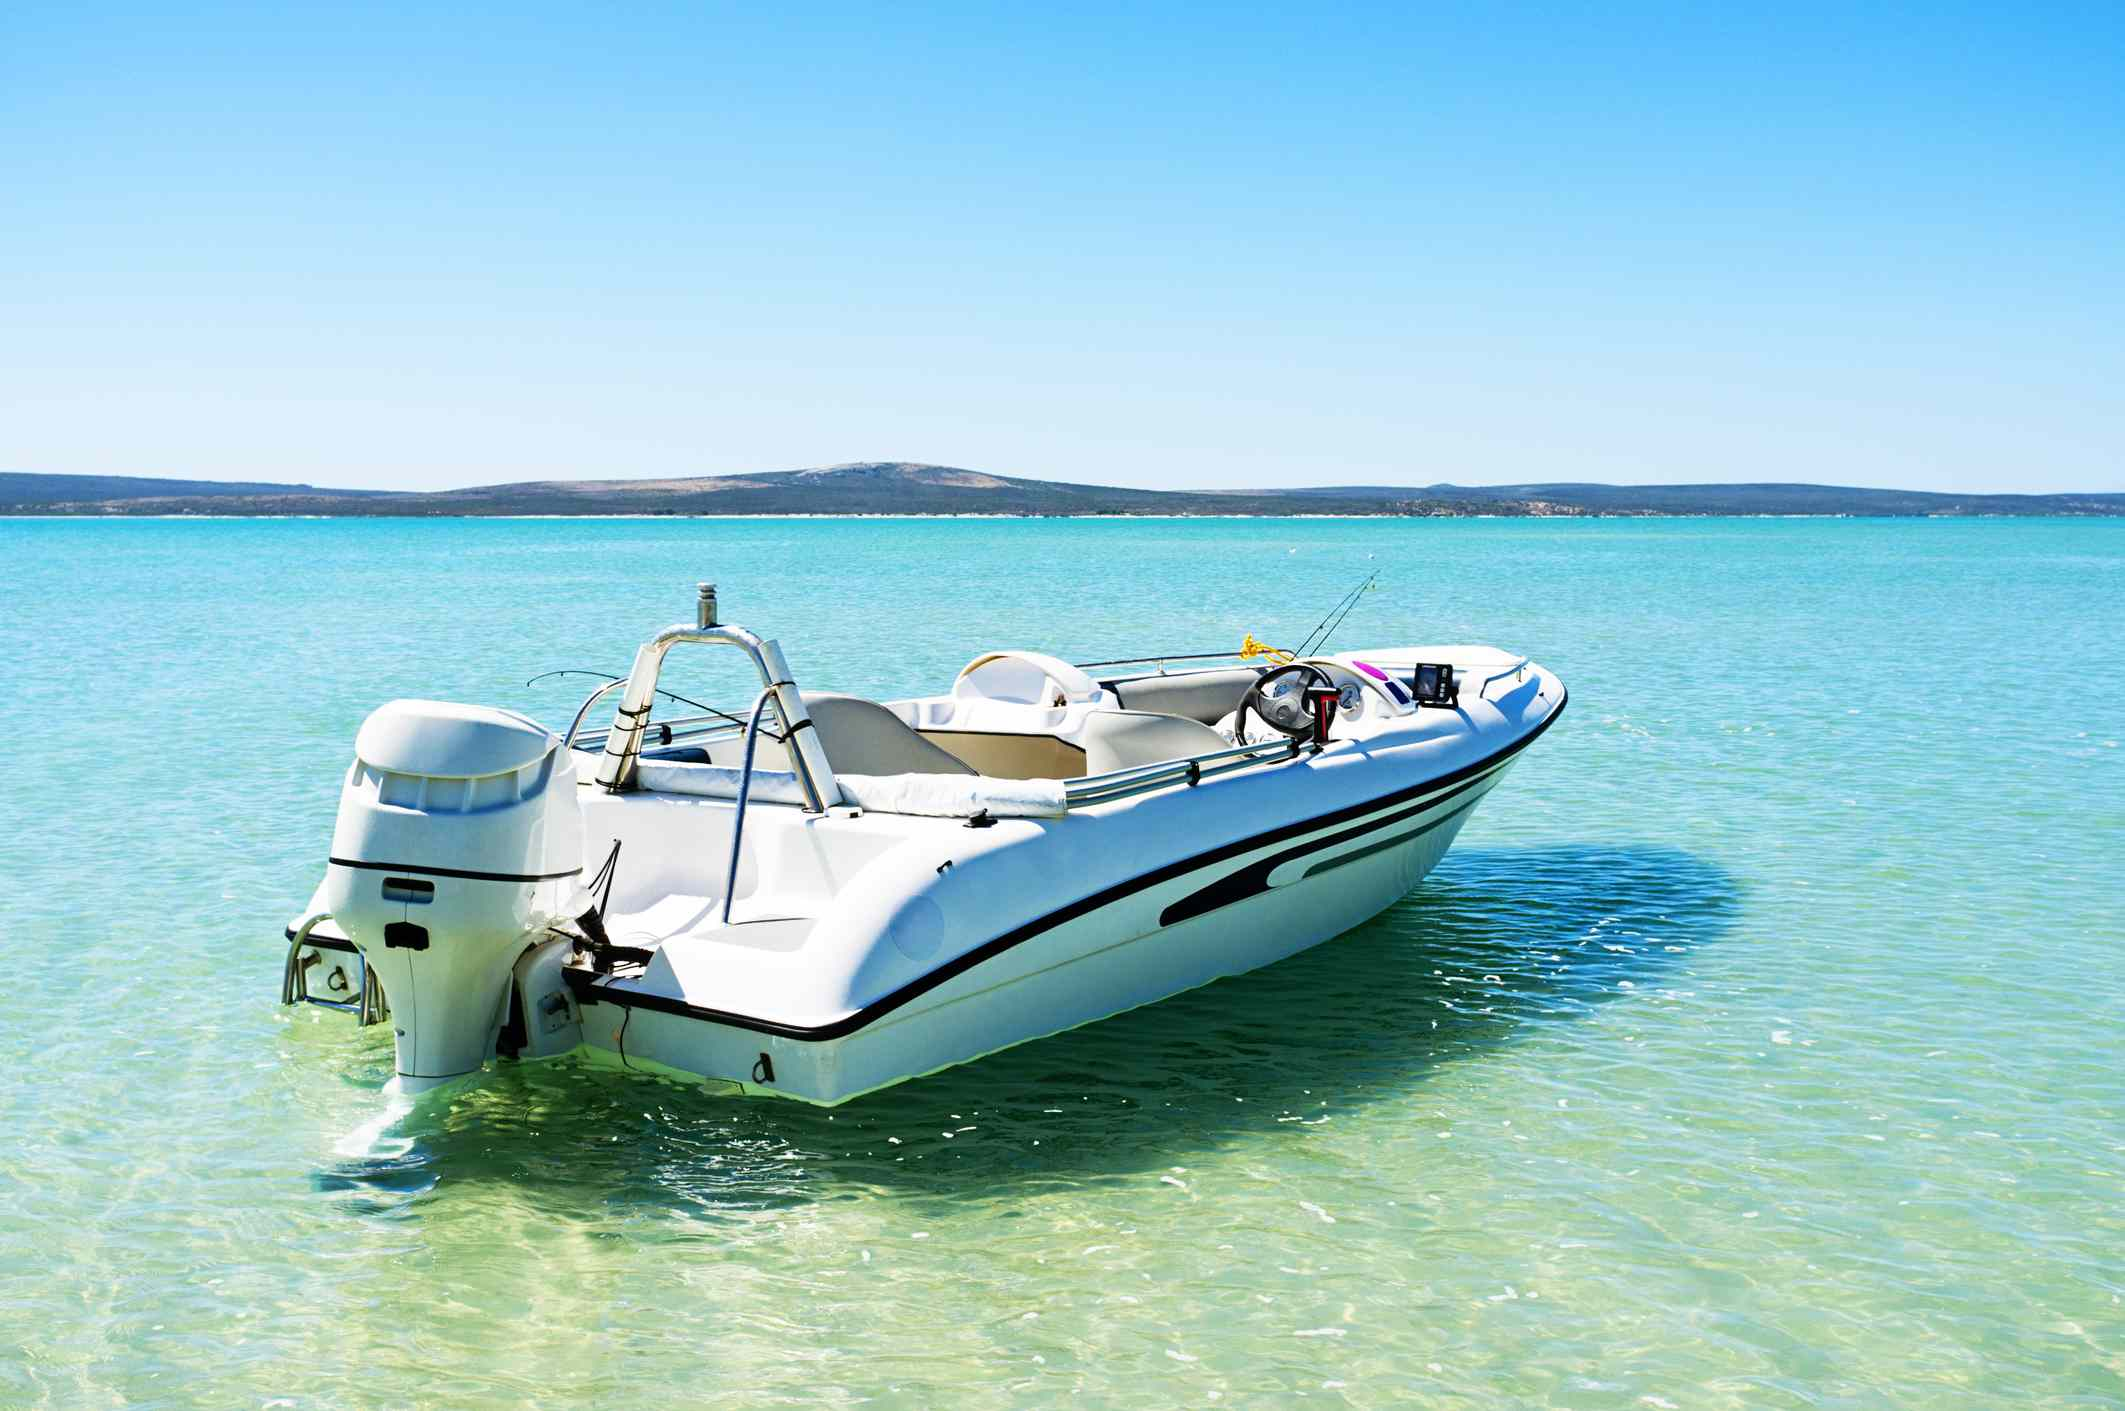 6 Drive Types For Boat Engines V8 Engine Diagram And Jet Speed With Large Outboard Motor